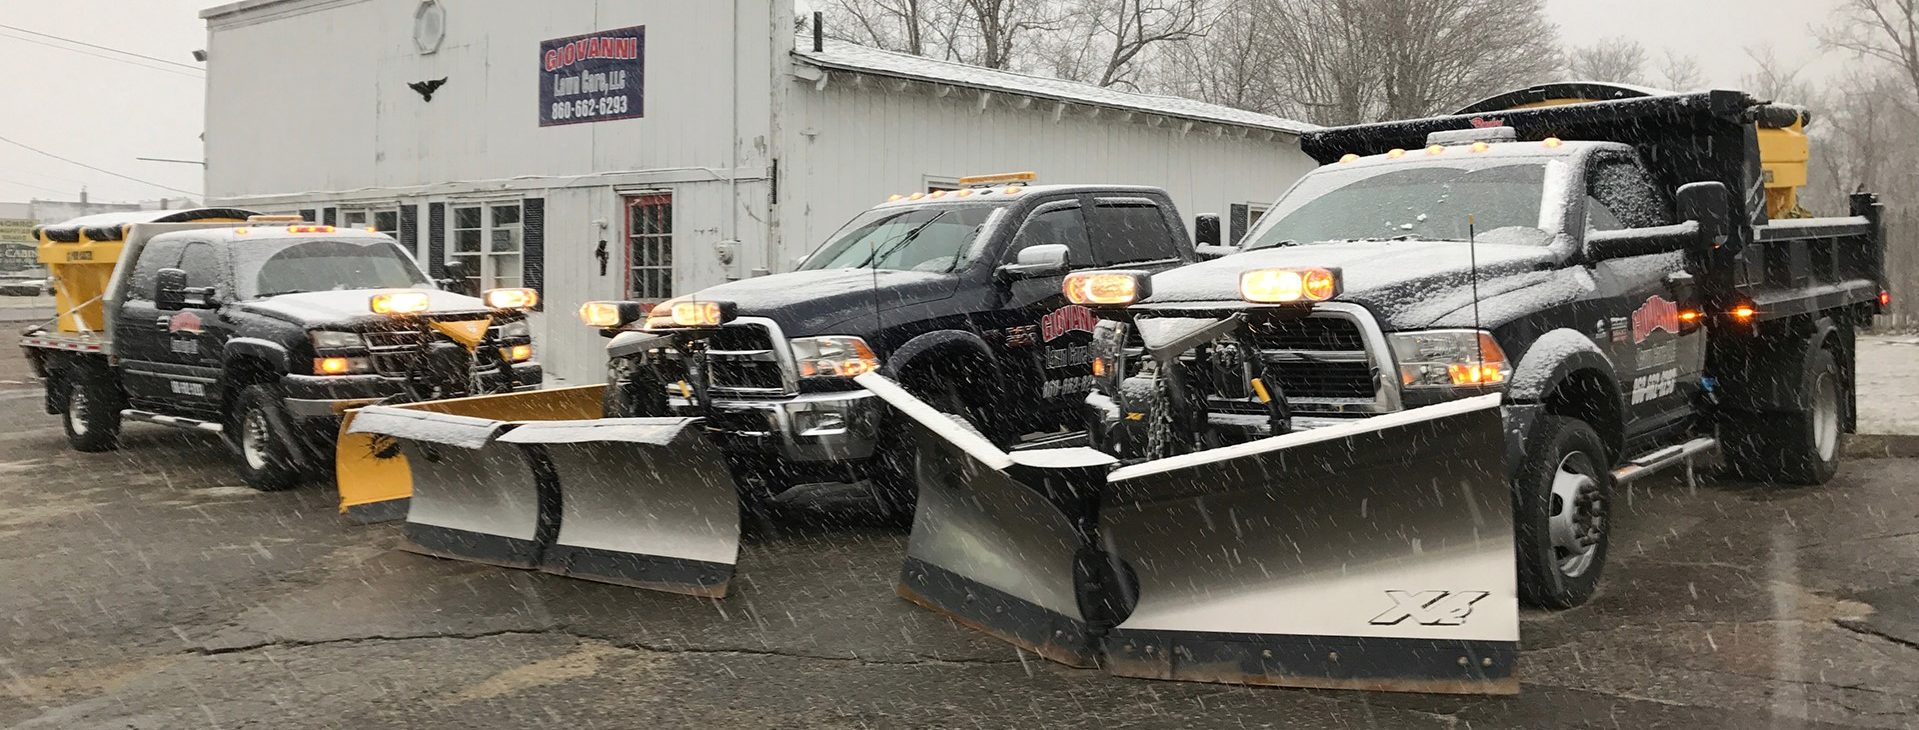 Snow and Ice removal services can be customized to fit your level of need.